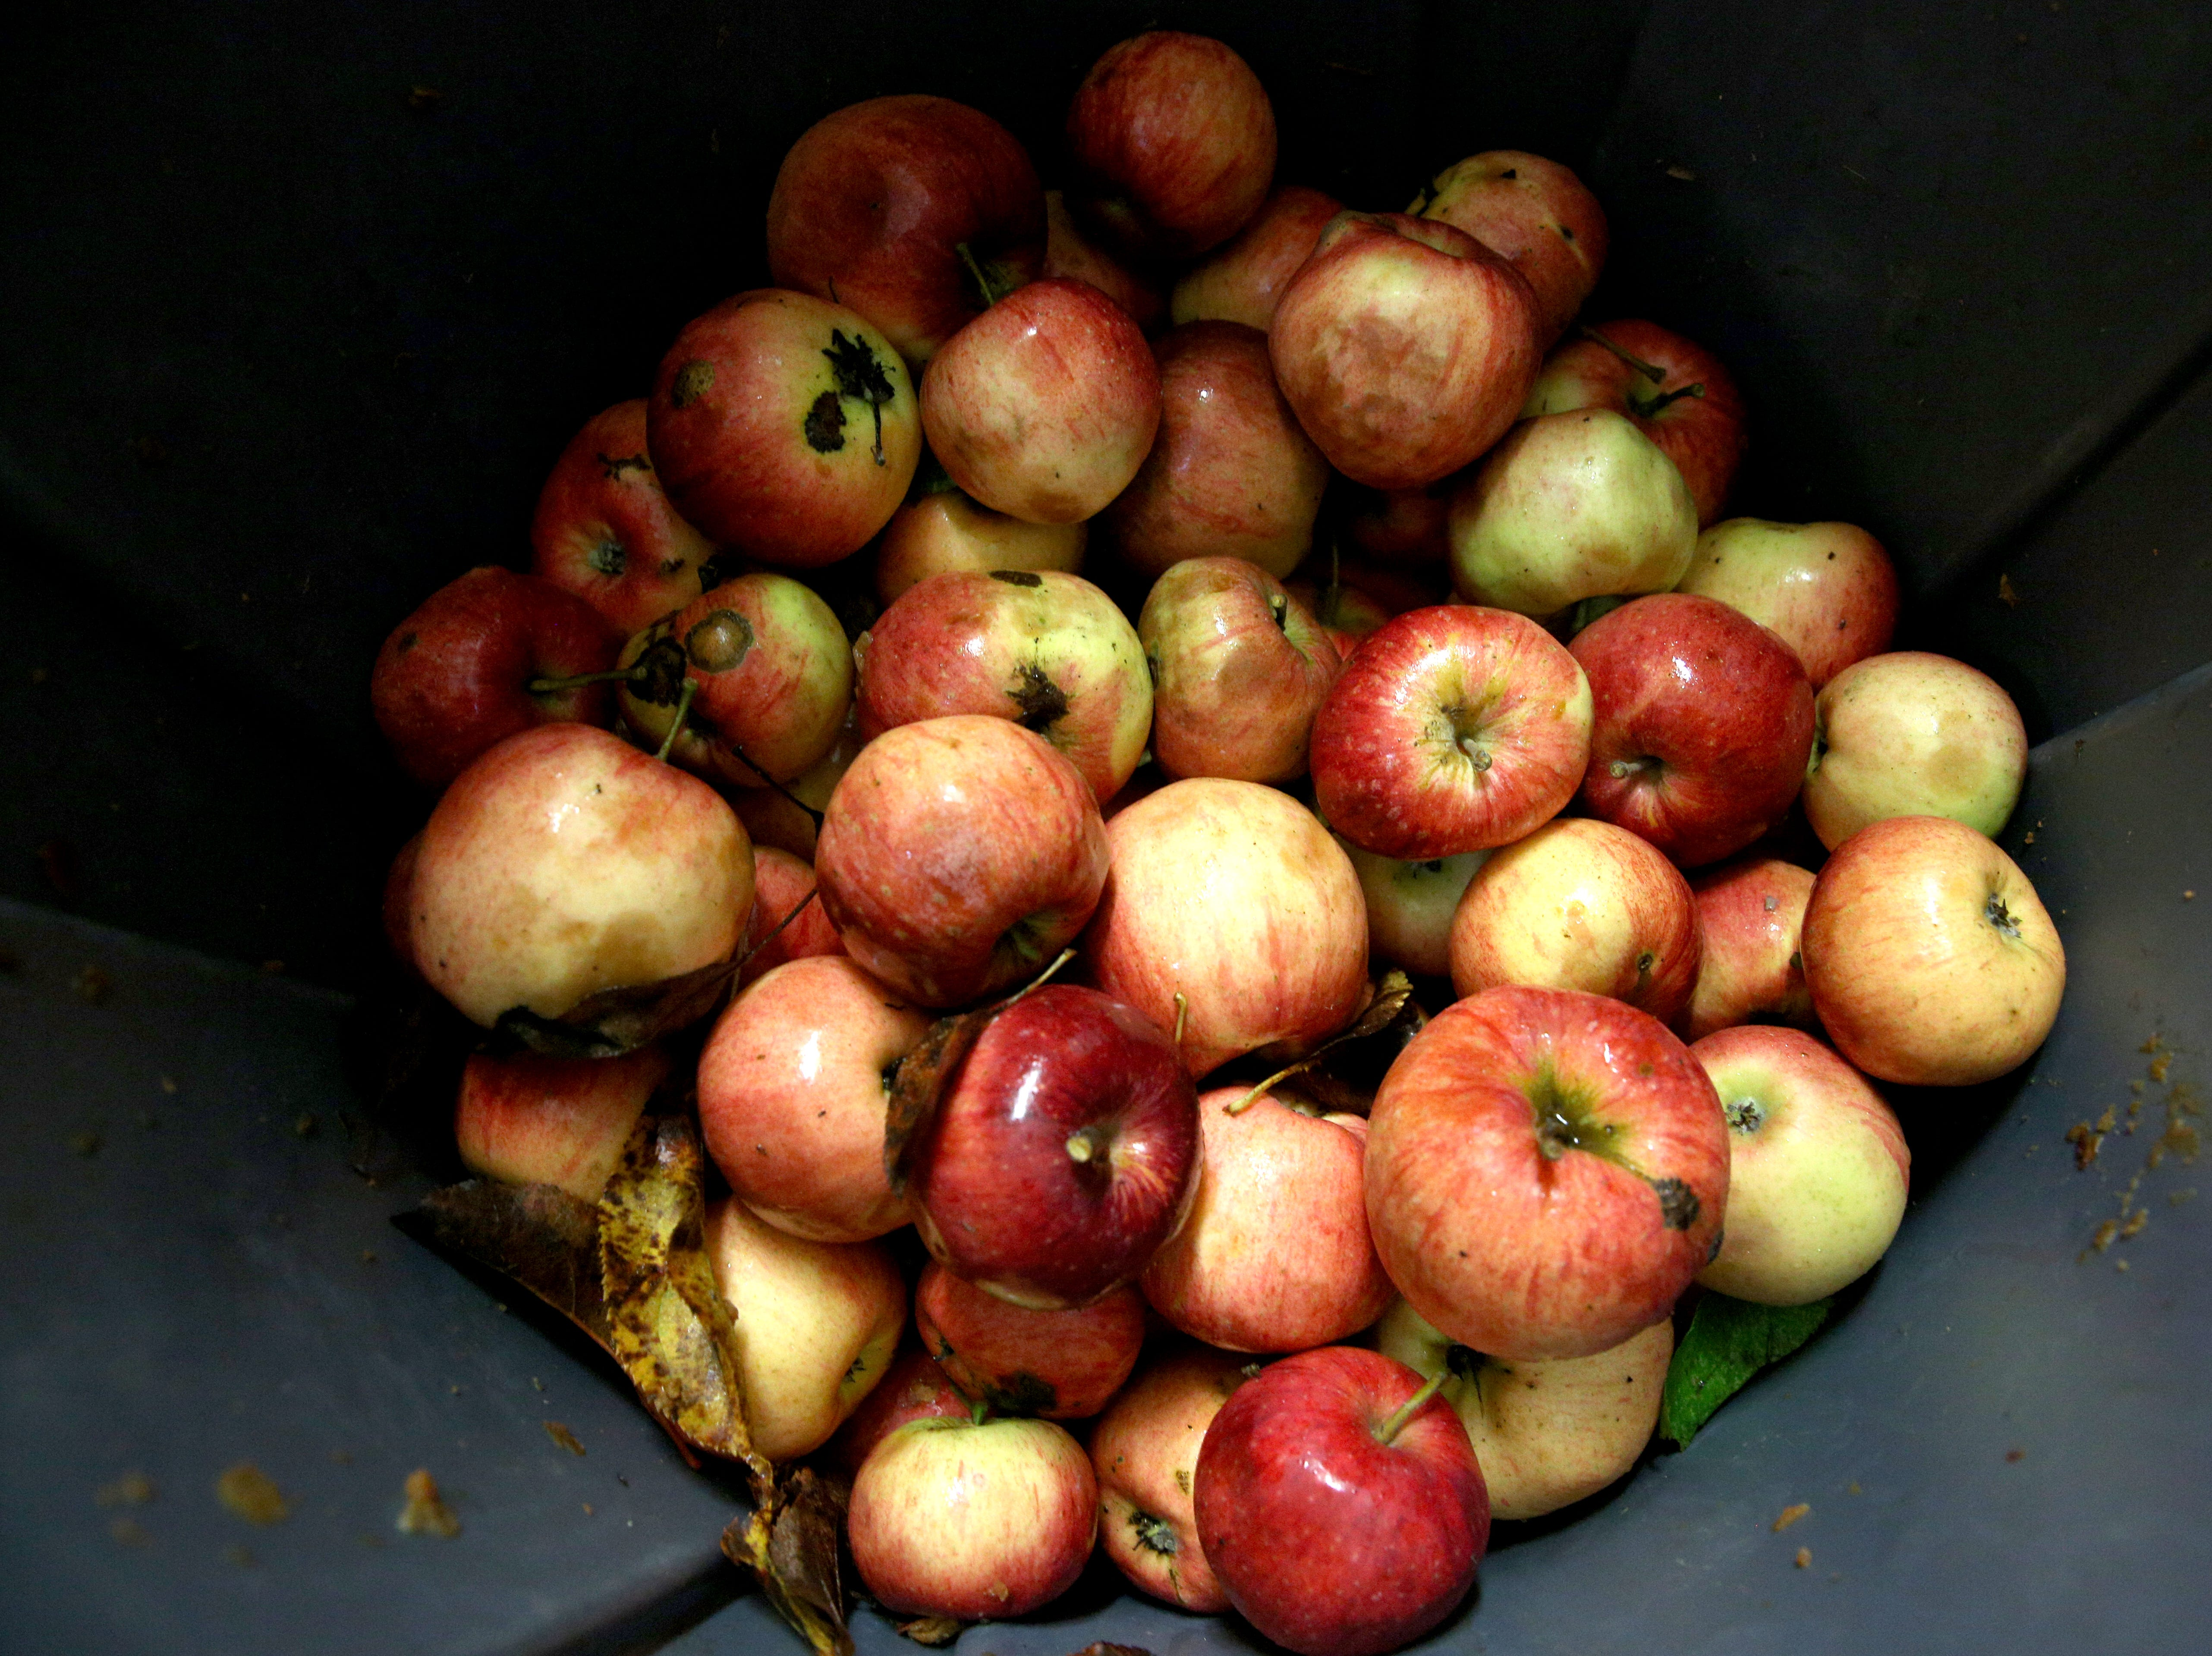 Apples at Divine Distillers are pictured on Wednesday, Oct. 31, 2018 on the last day they are processed for their award-winning apple brandy. The apples are grown locally in Salem.